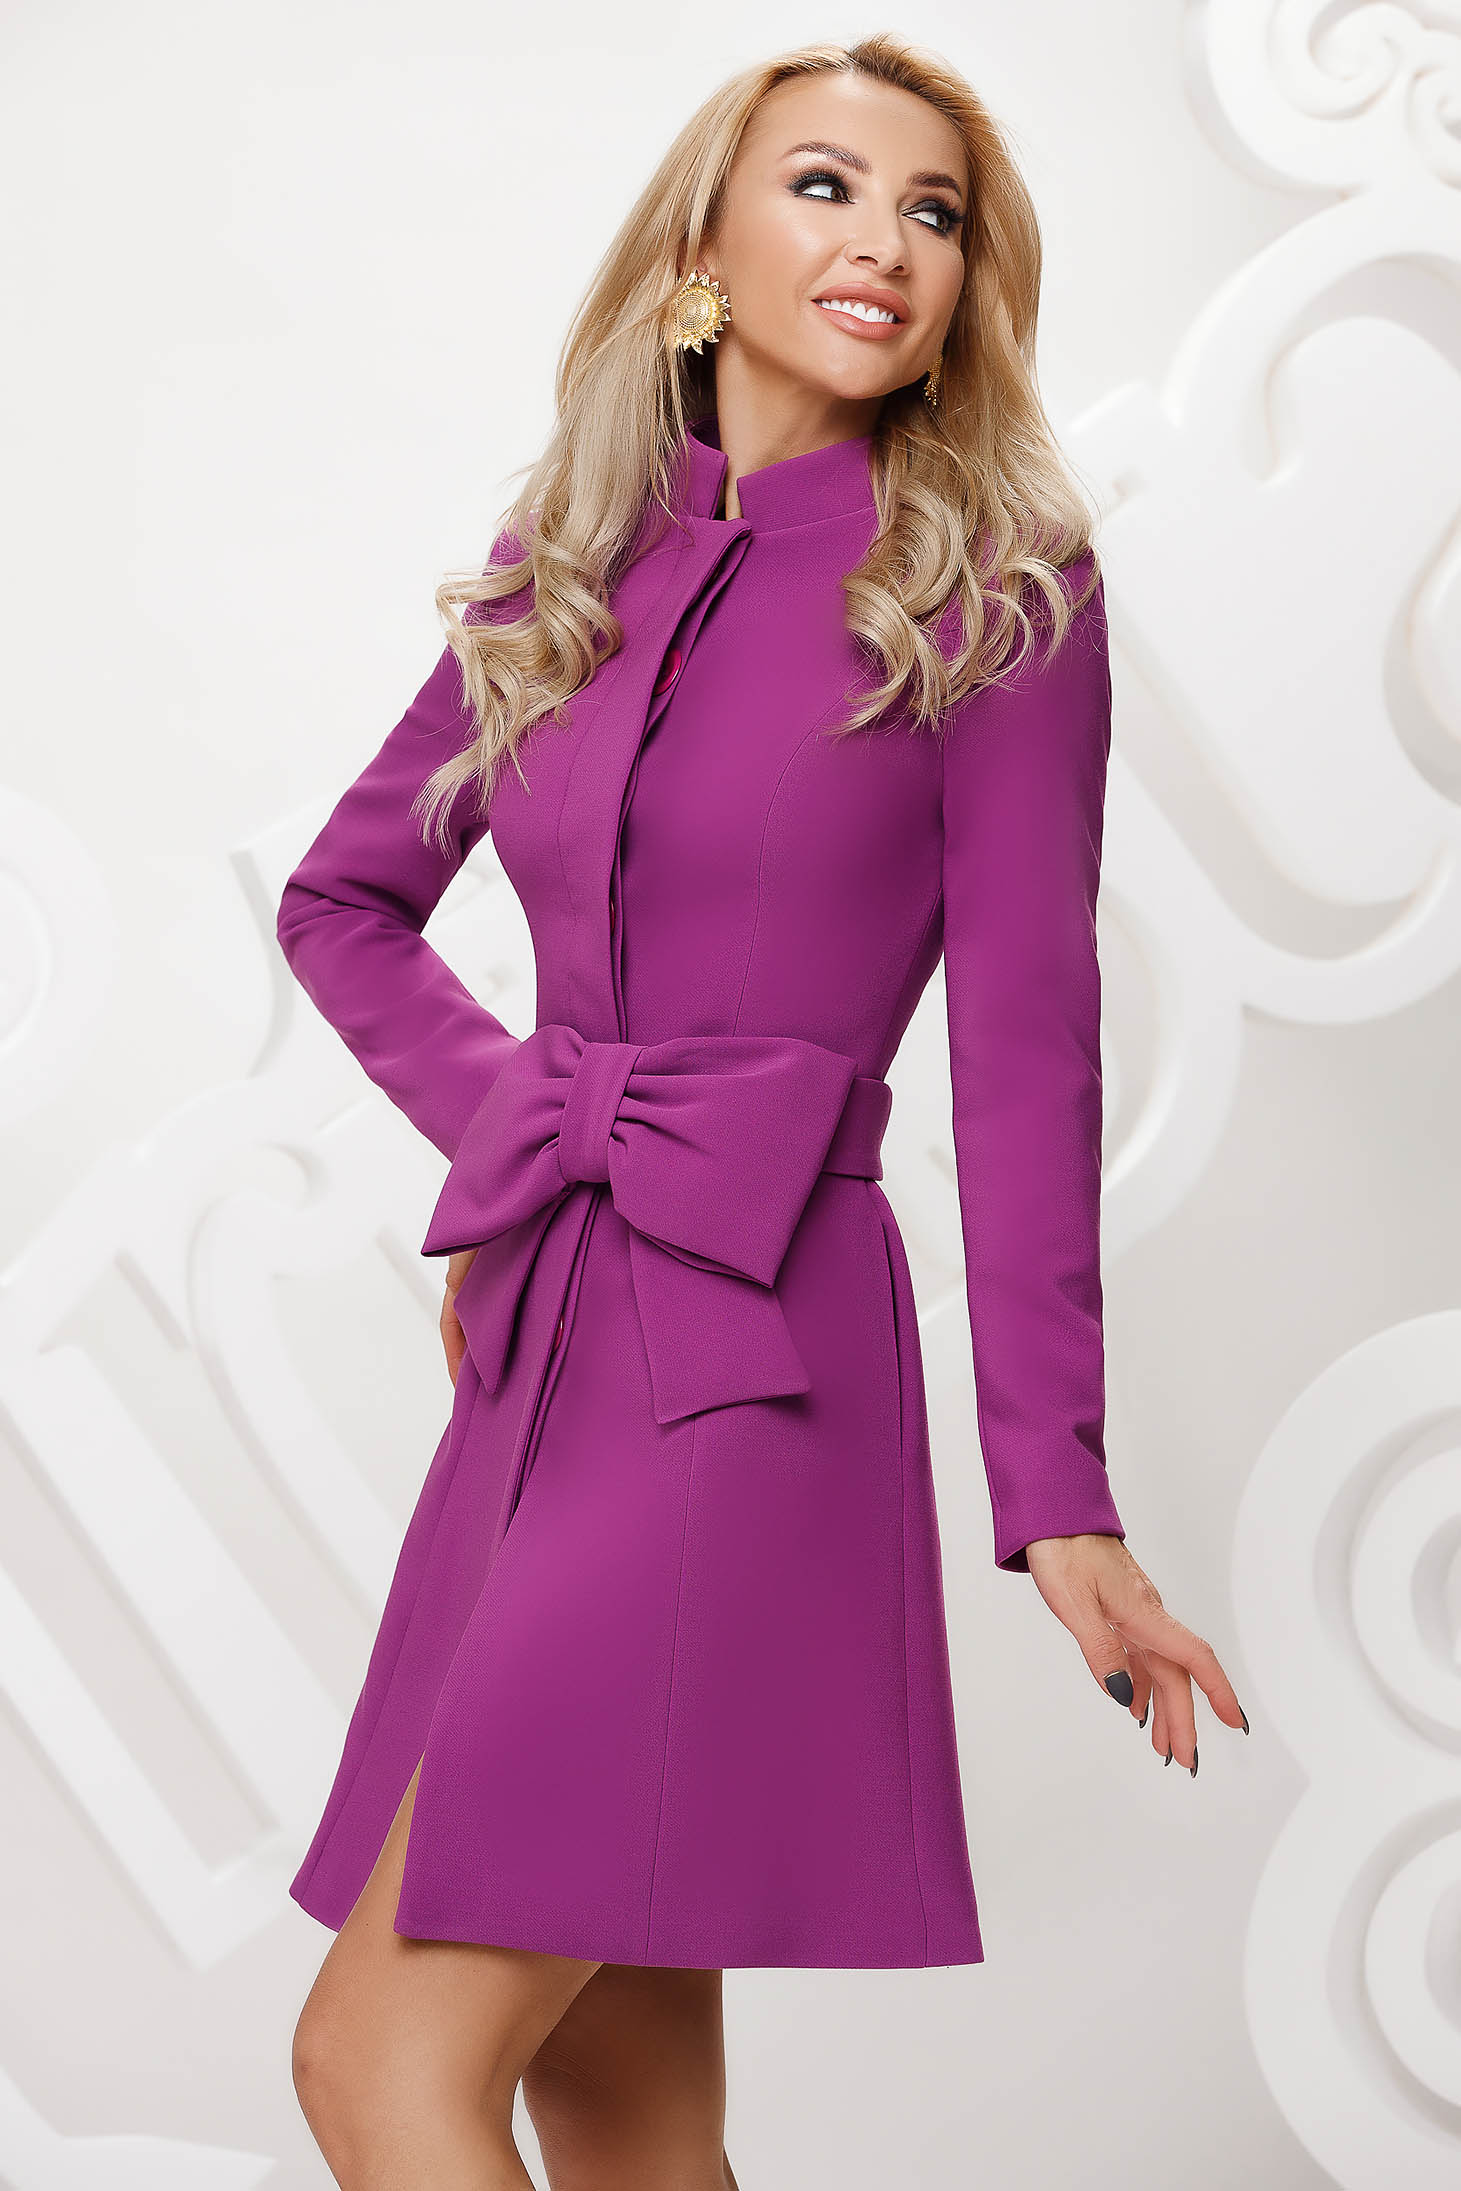 Purple trenchcoat tented short cut elegant accessorized with tied waistband bow accessory